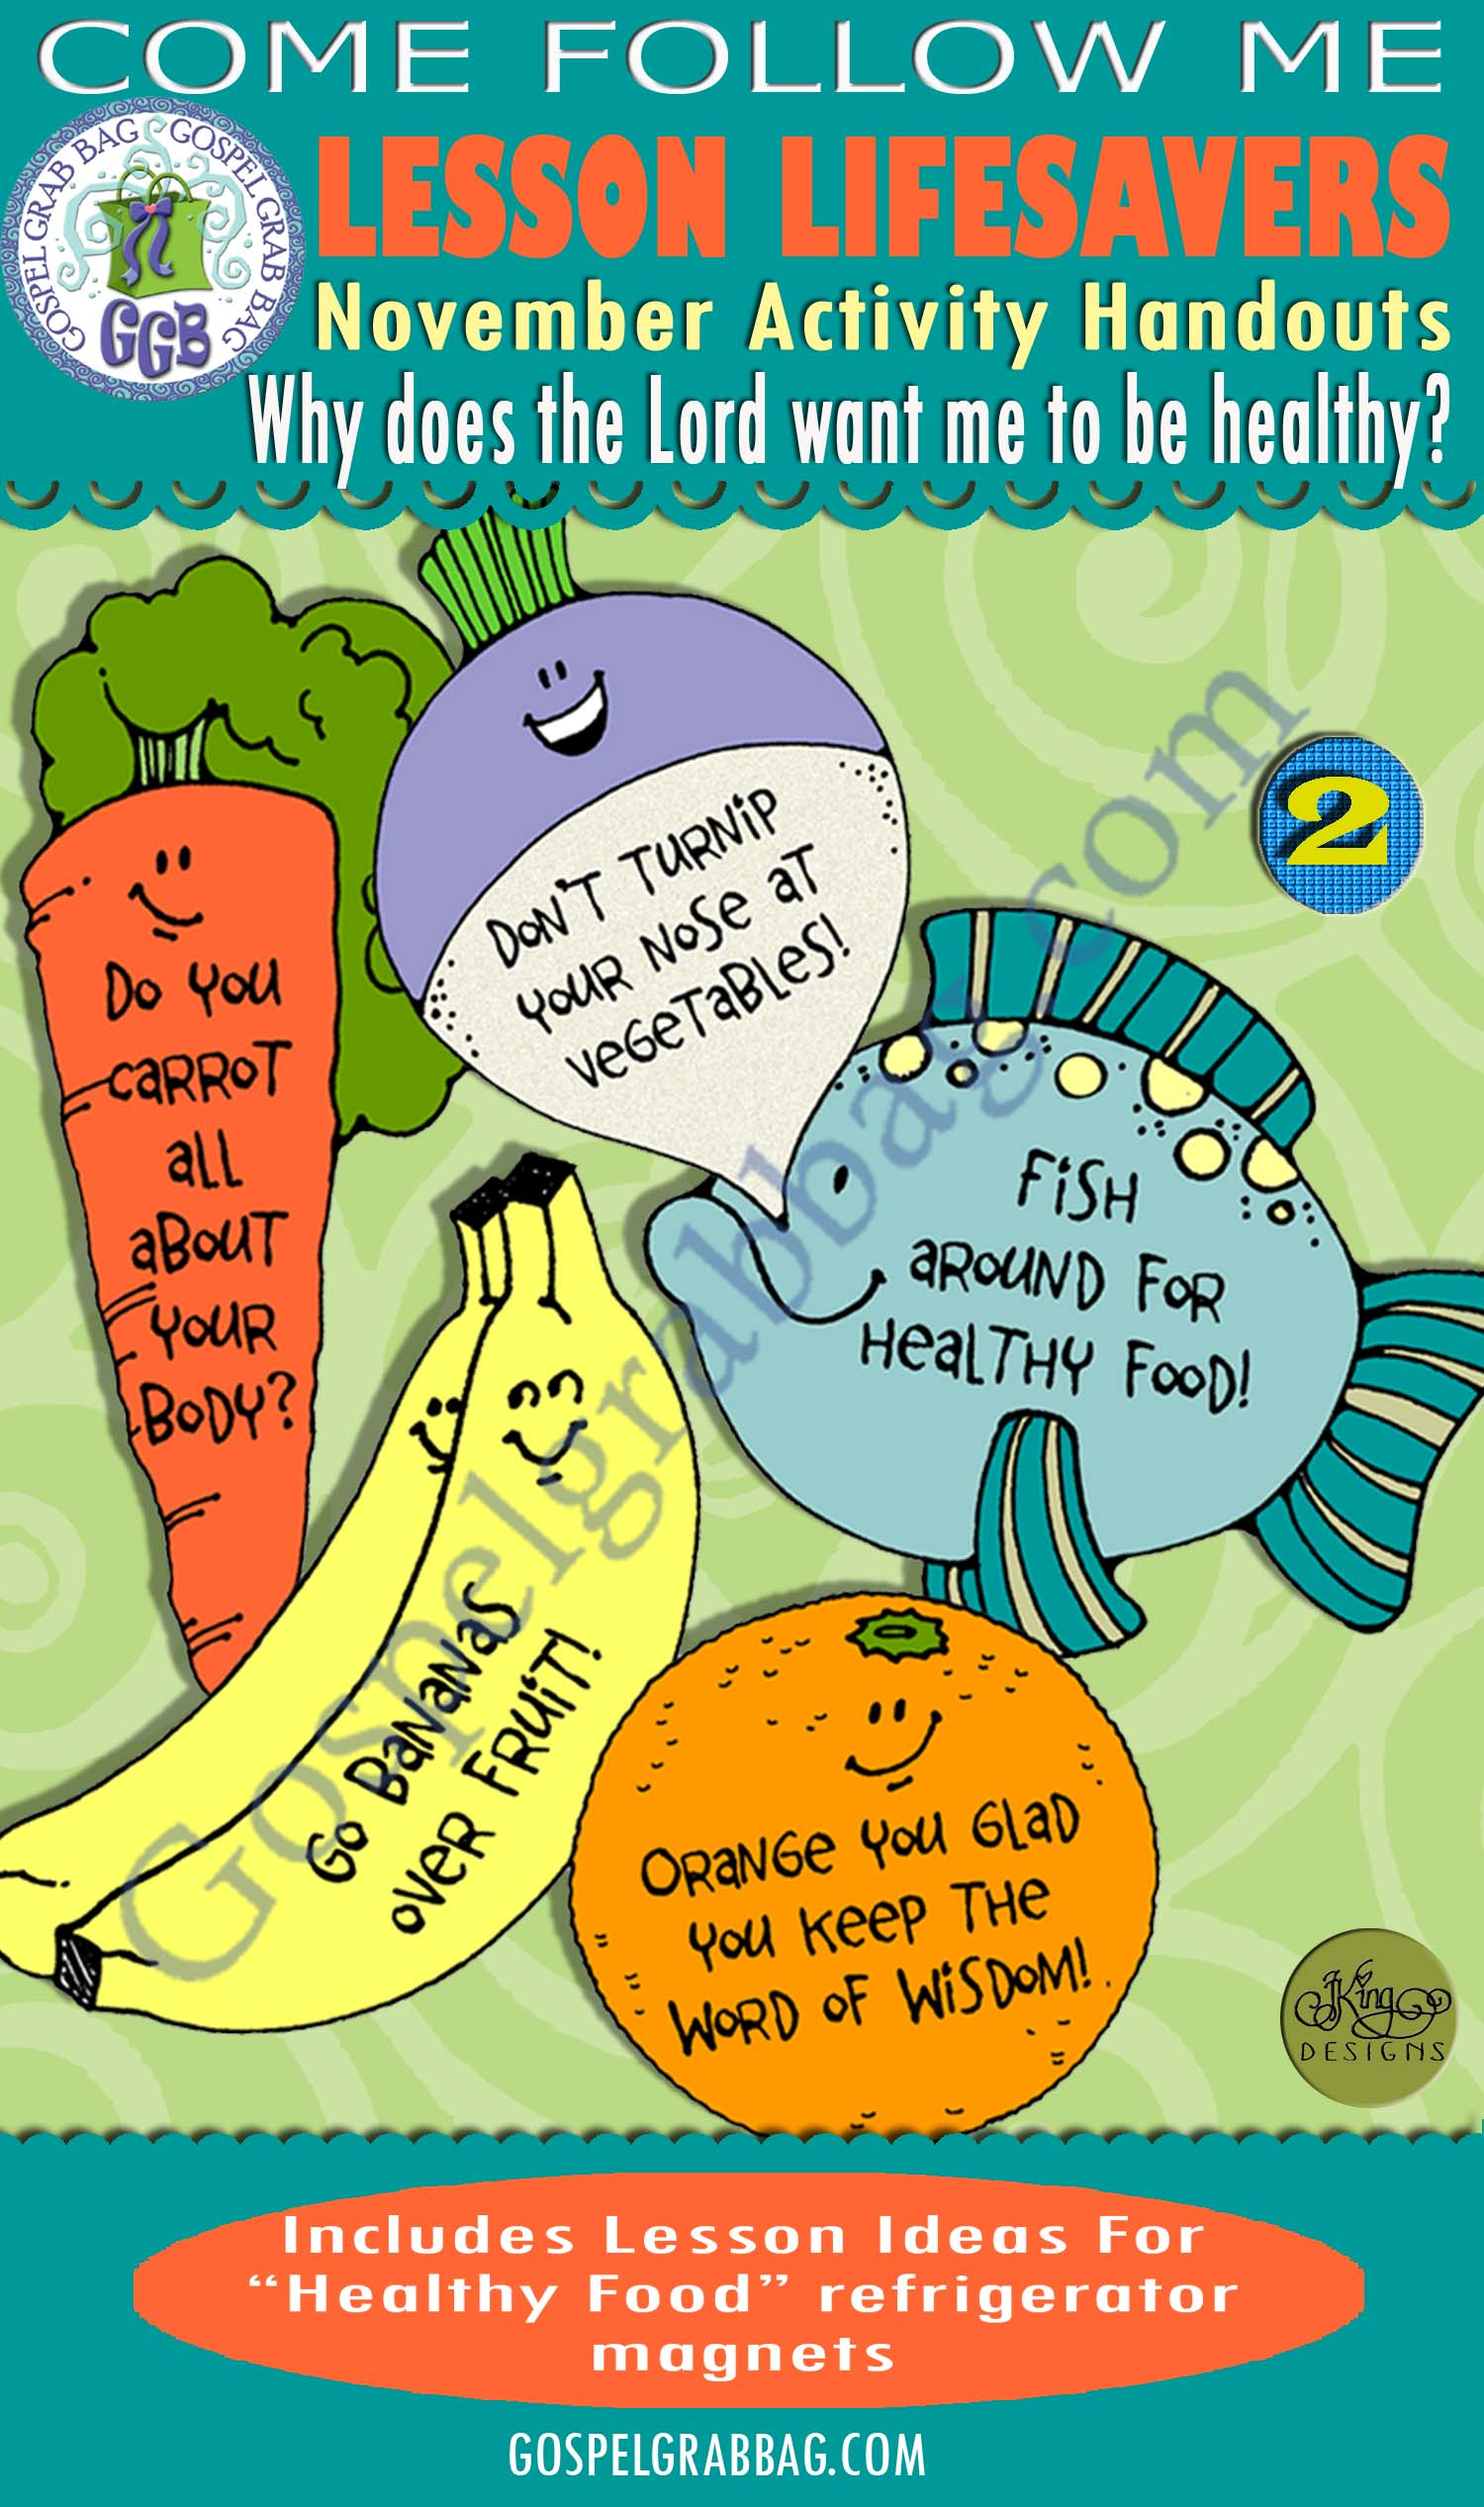 "$1.75 November Lesson 5 - Come Follow Me ""Why does the Lord want me to be healthy?"" ACTIVITY: Healthful Food Refrigerator magnets"